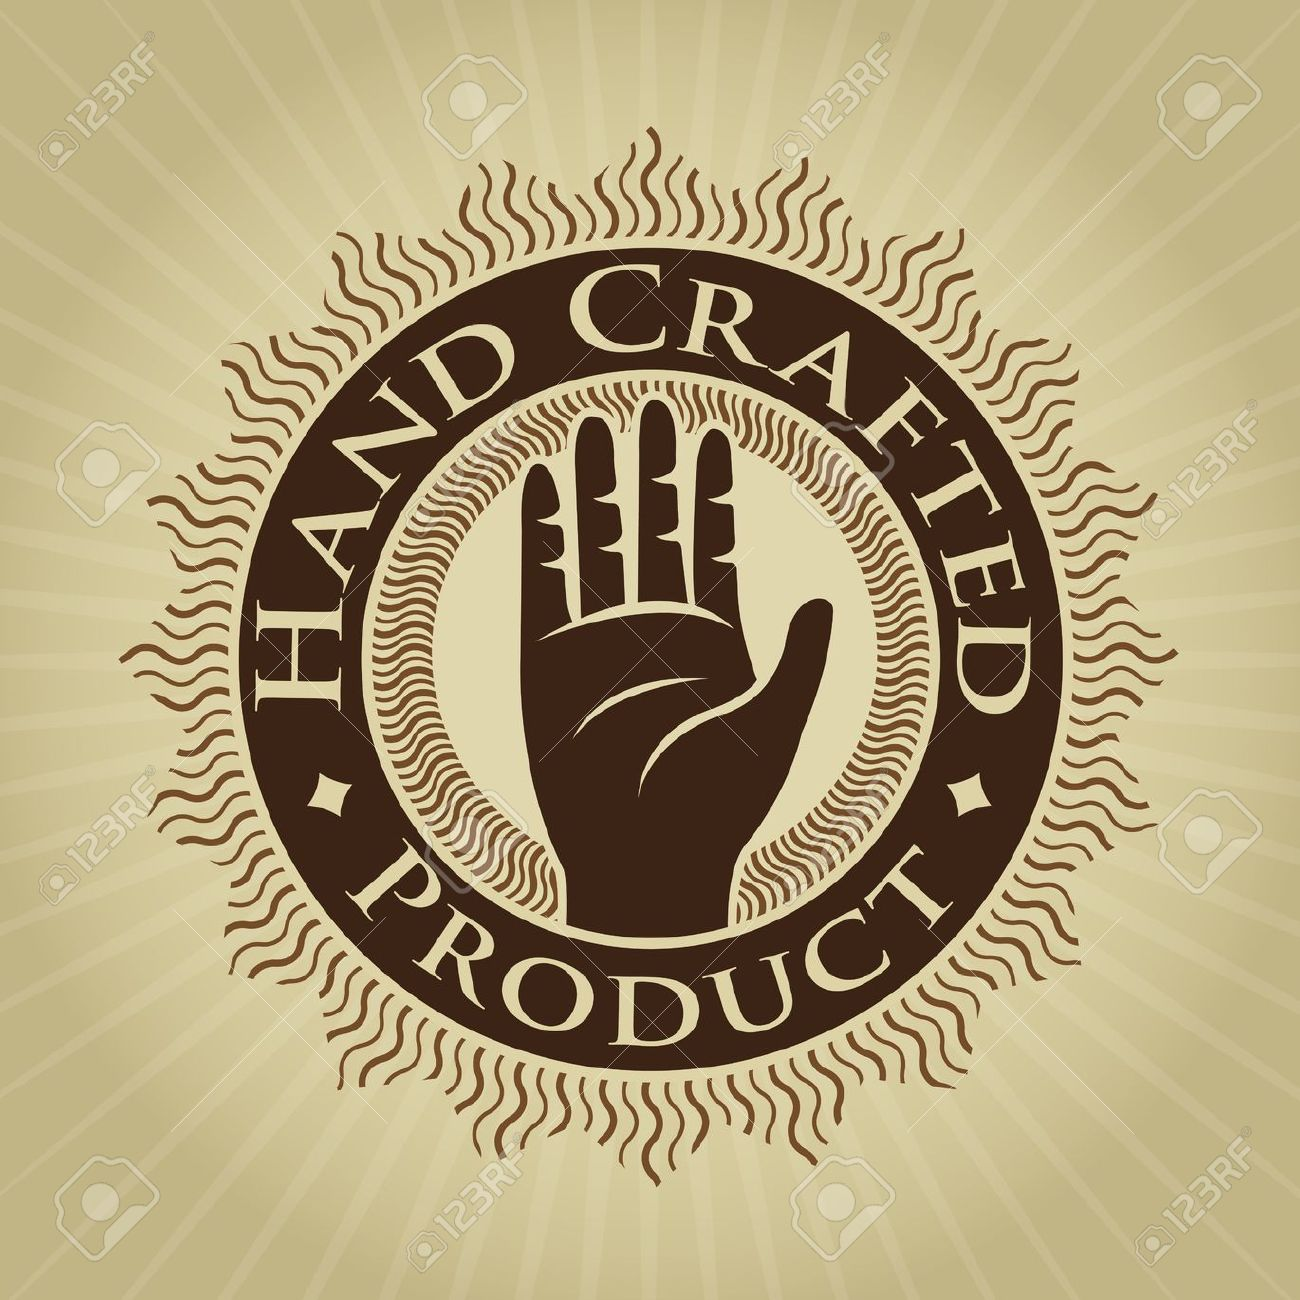 Handcrafted clipart.